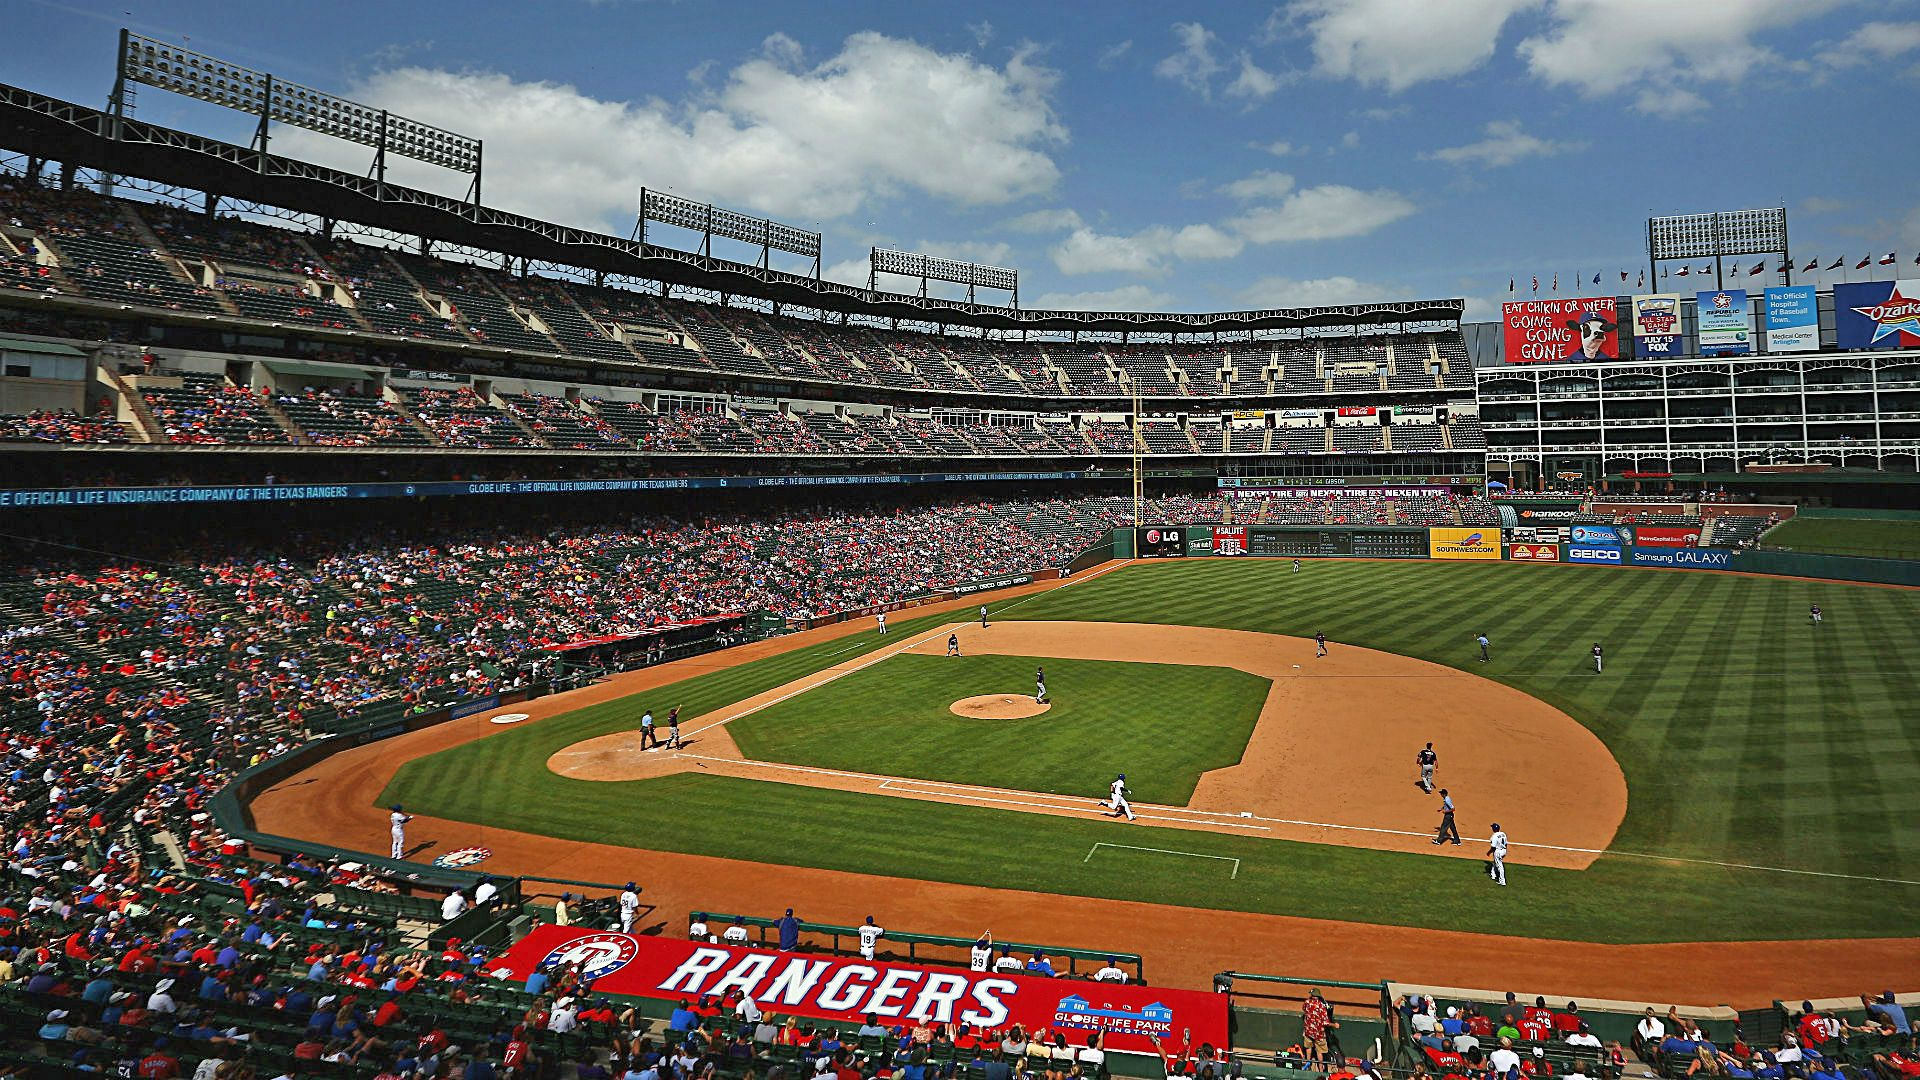 Globe Life Park Seat Map and Venue Information | Take Me Out ... on globe life park sponsors, globe life park concert, globe life park parking, globe life park tailgating,